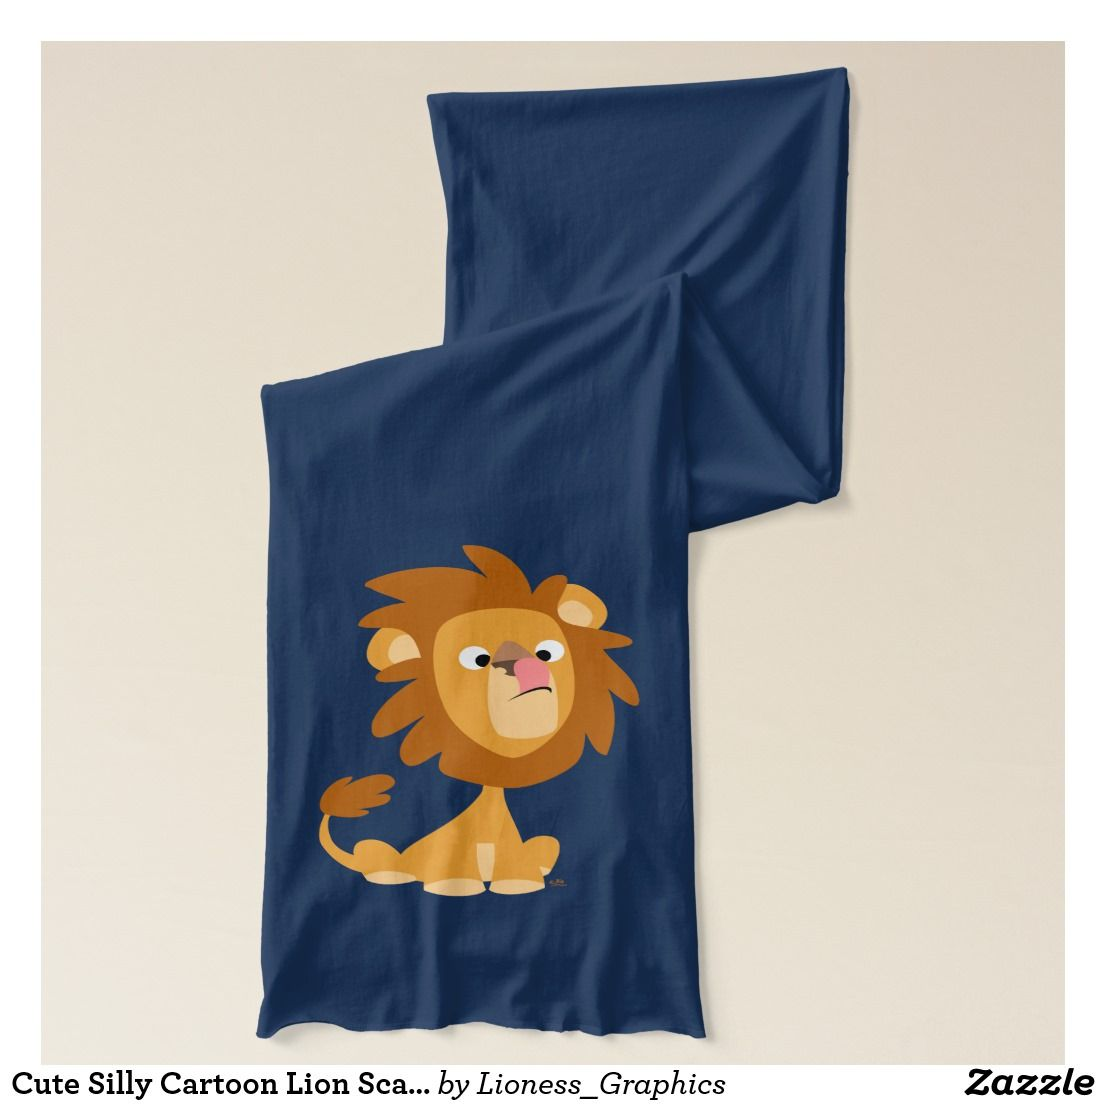 Cute Silly Cartoon Lion Scarf |  Cute Silly Cartoon Lion Scarf by Cheerful Madness!! At Zazzle